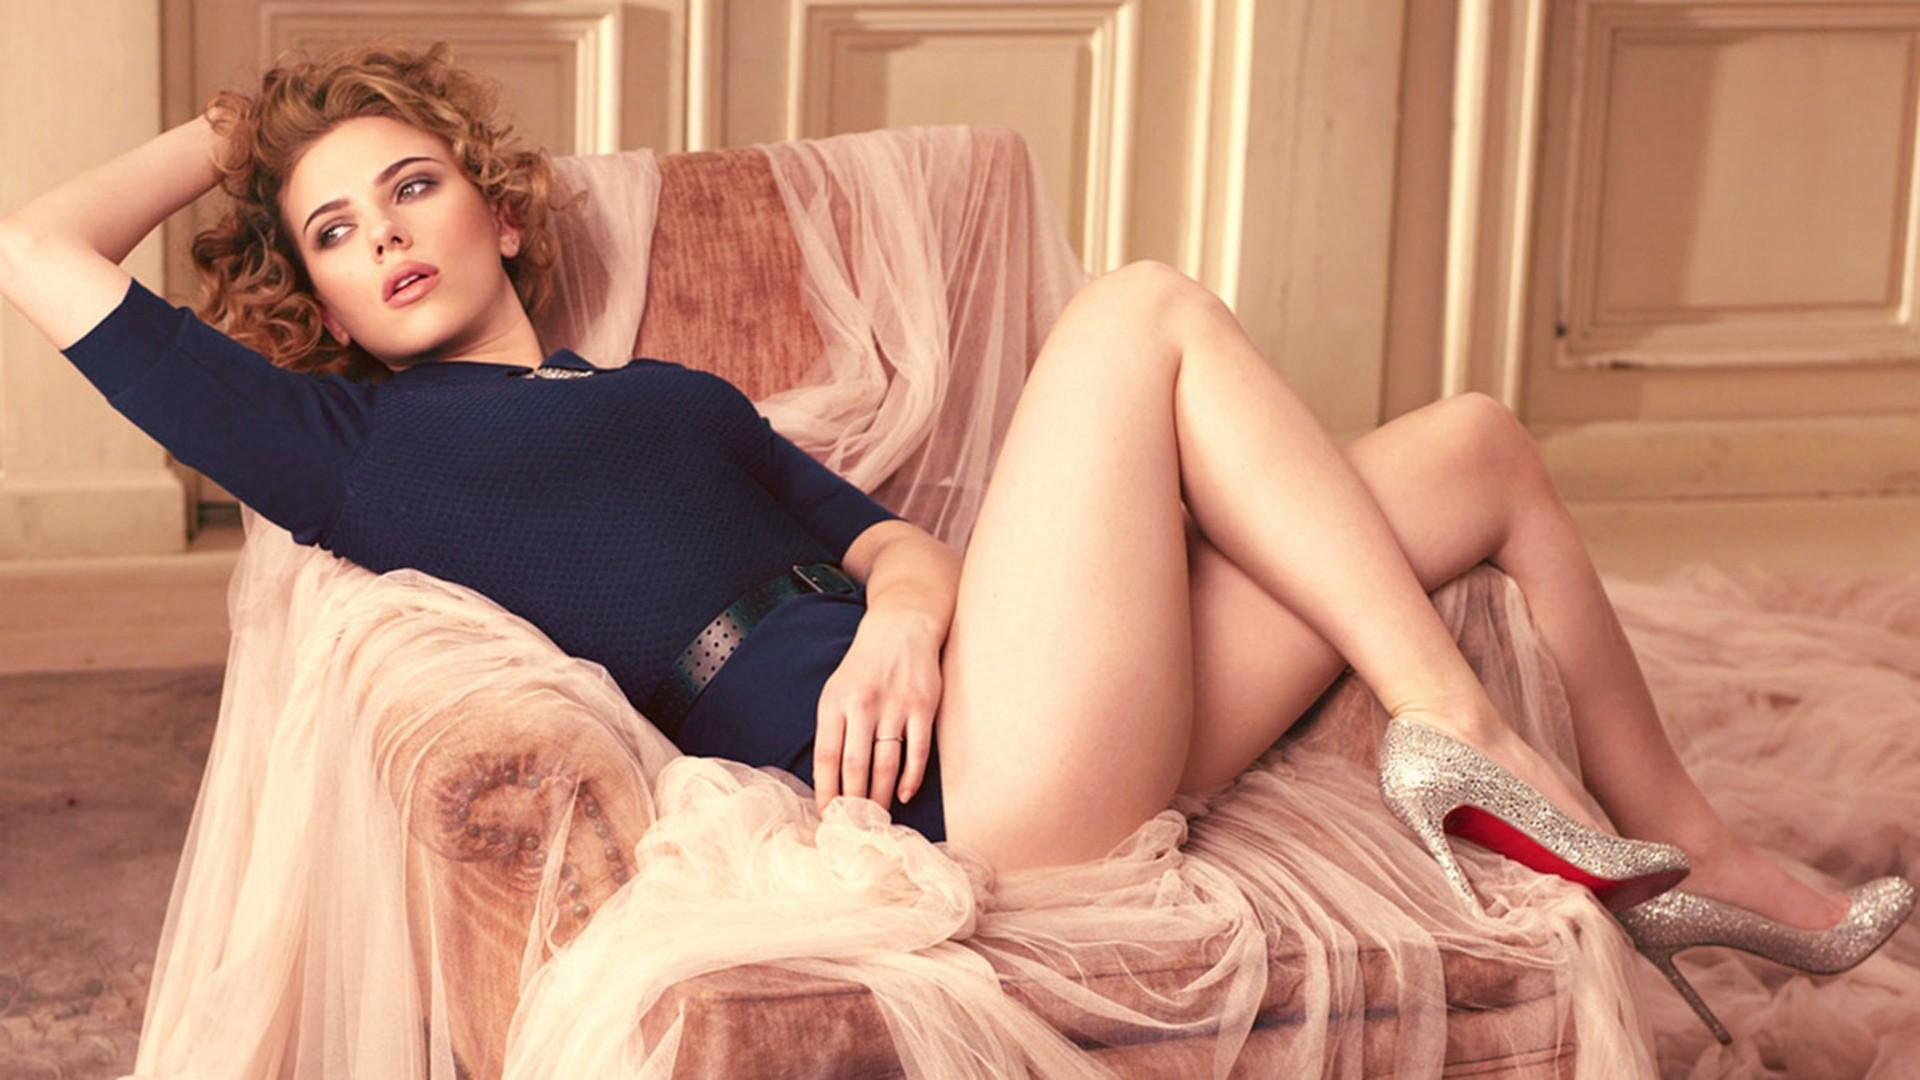 sexual fantasies of hollywood actresses